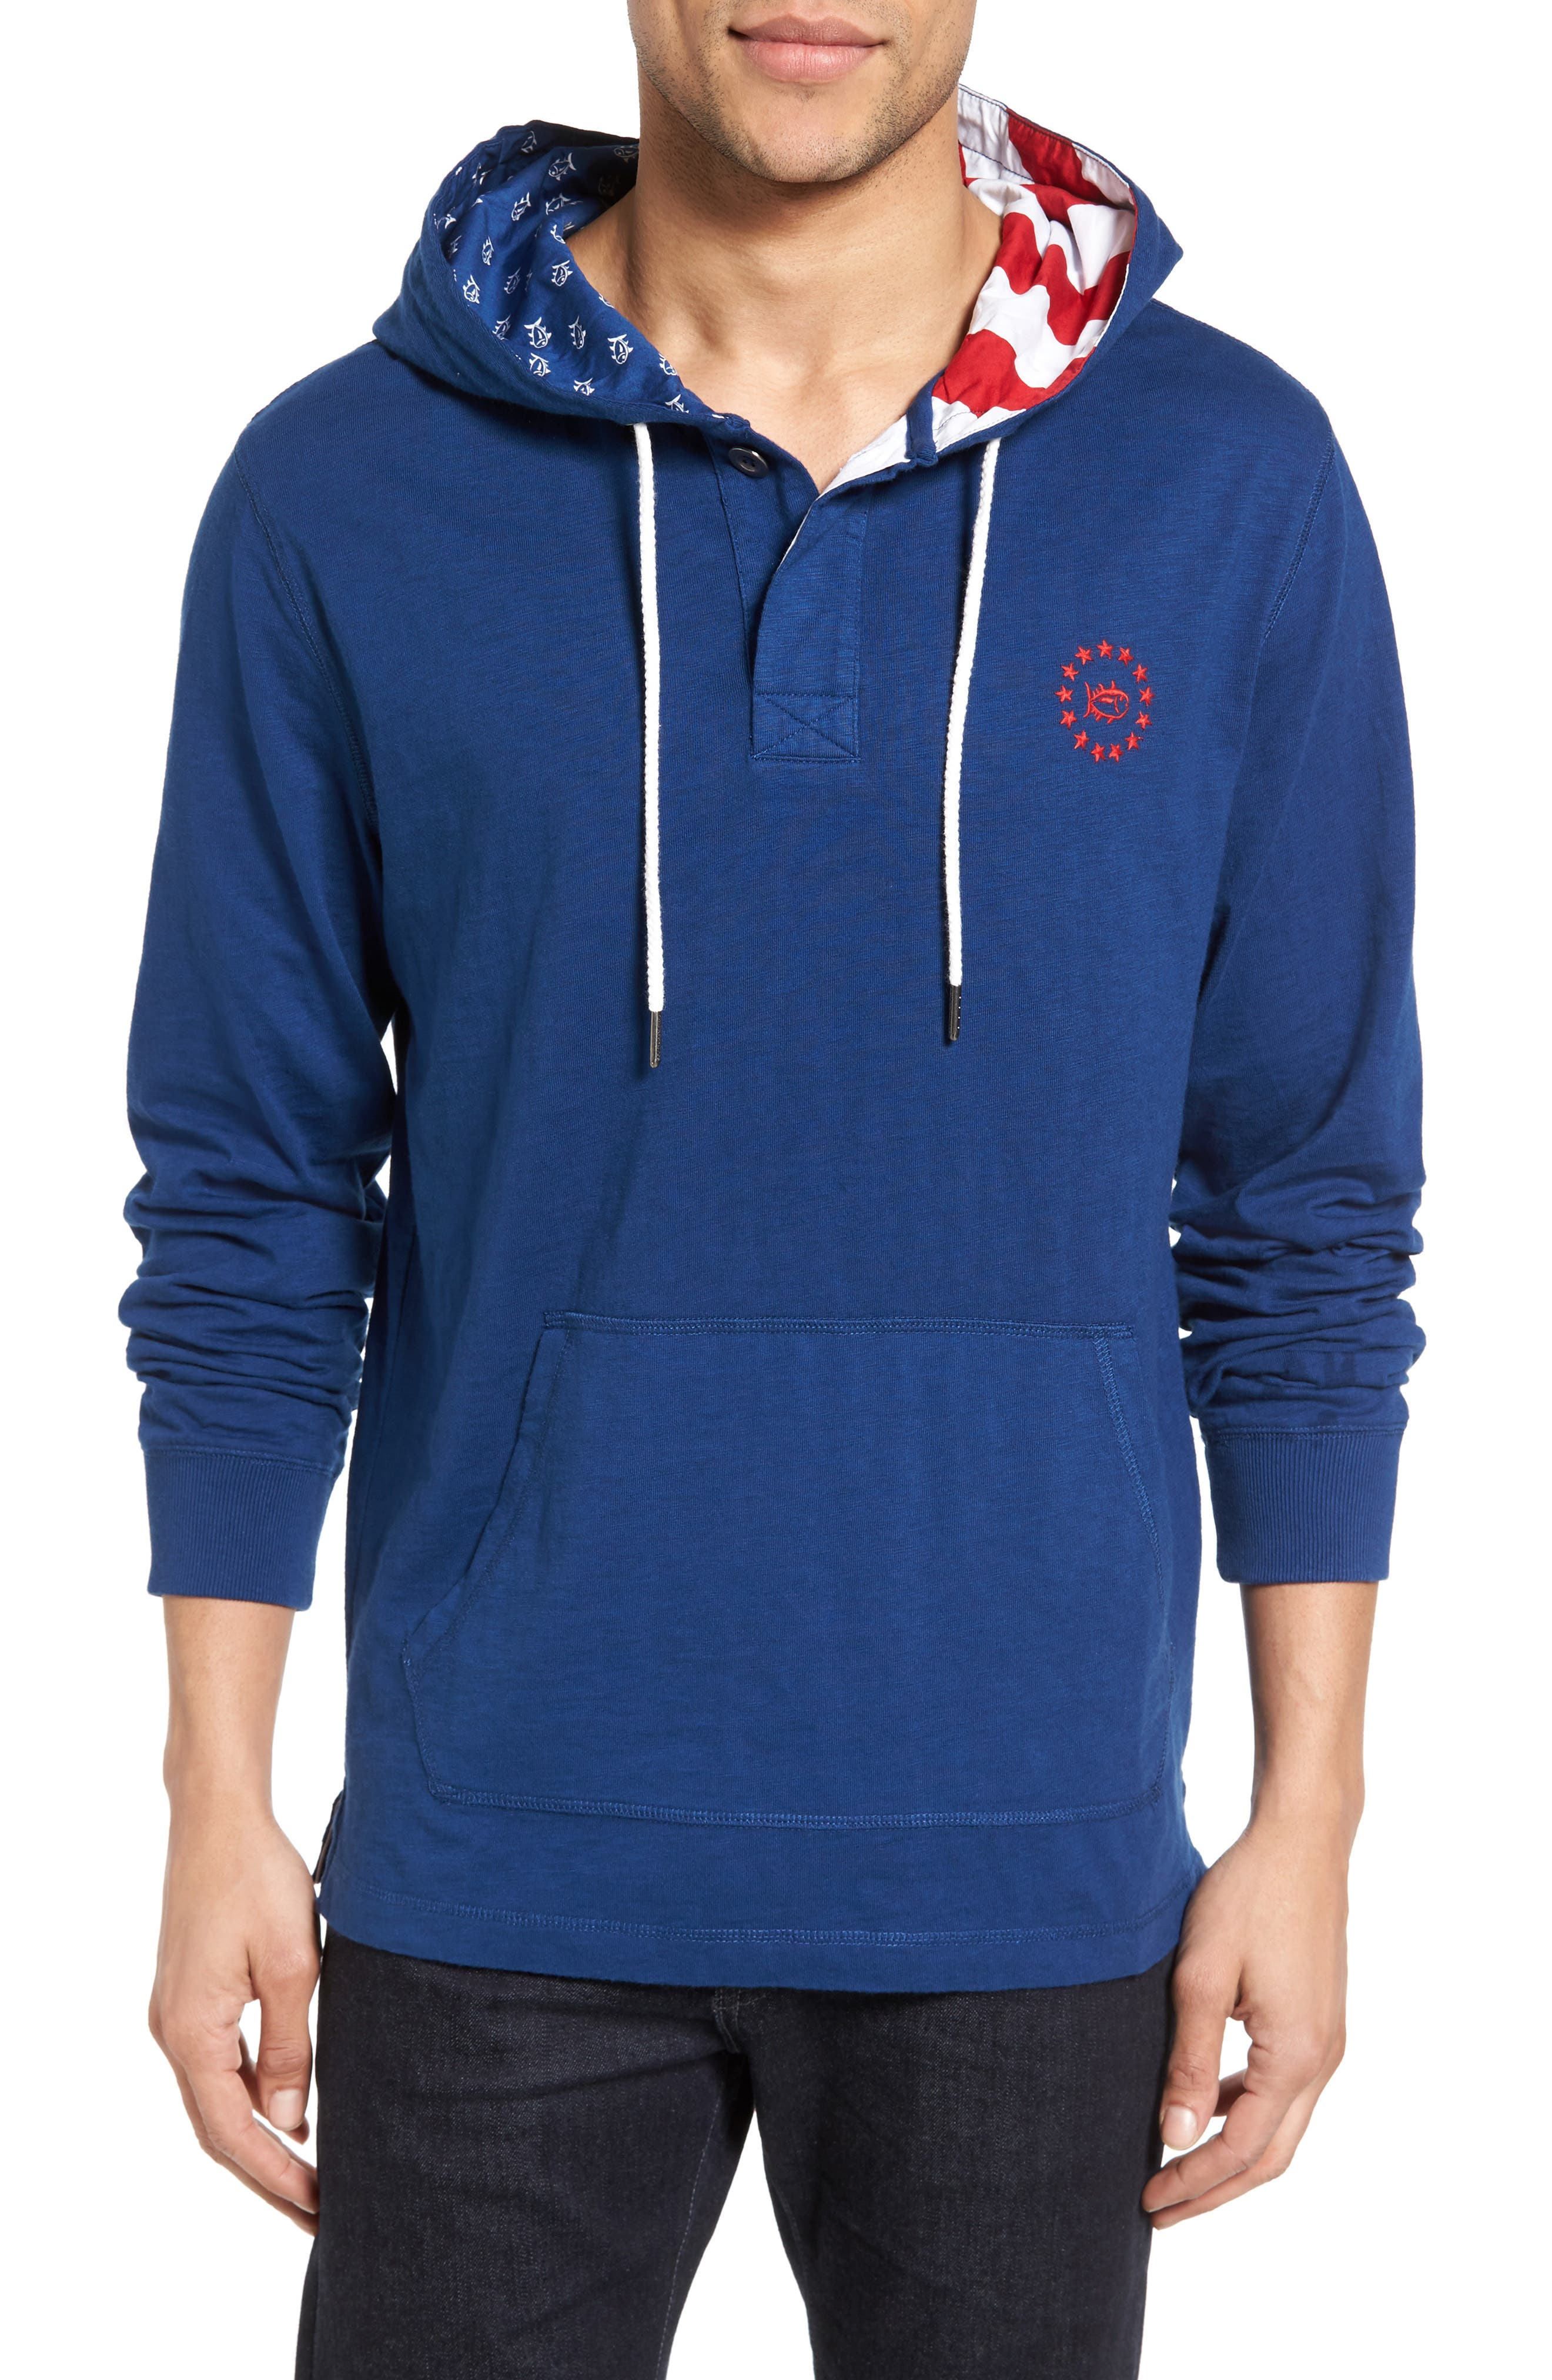 Freedom Rock Hoodie,                             Main thumbnail 1, color,                             422